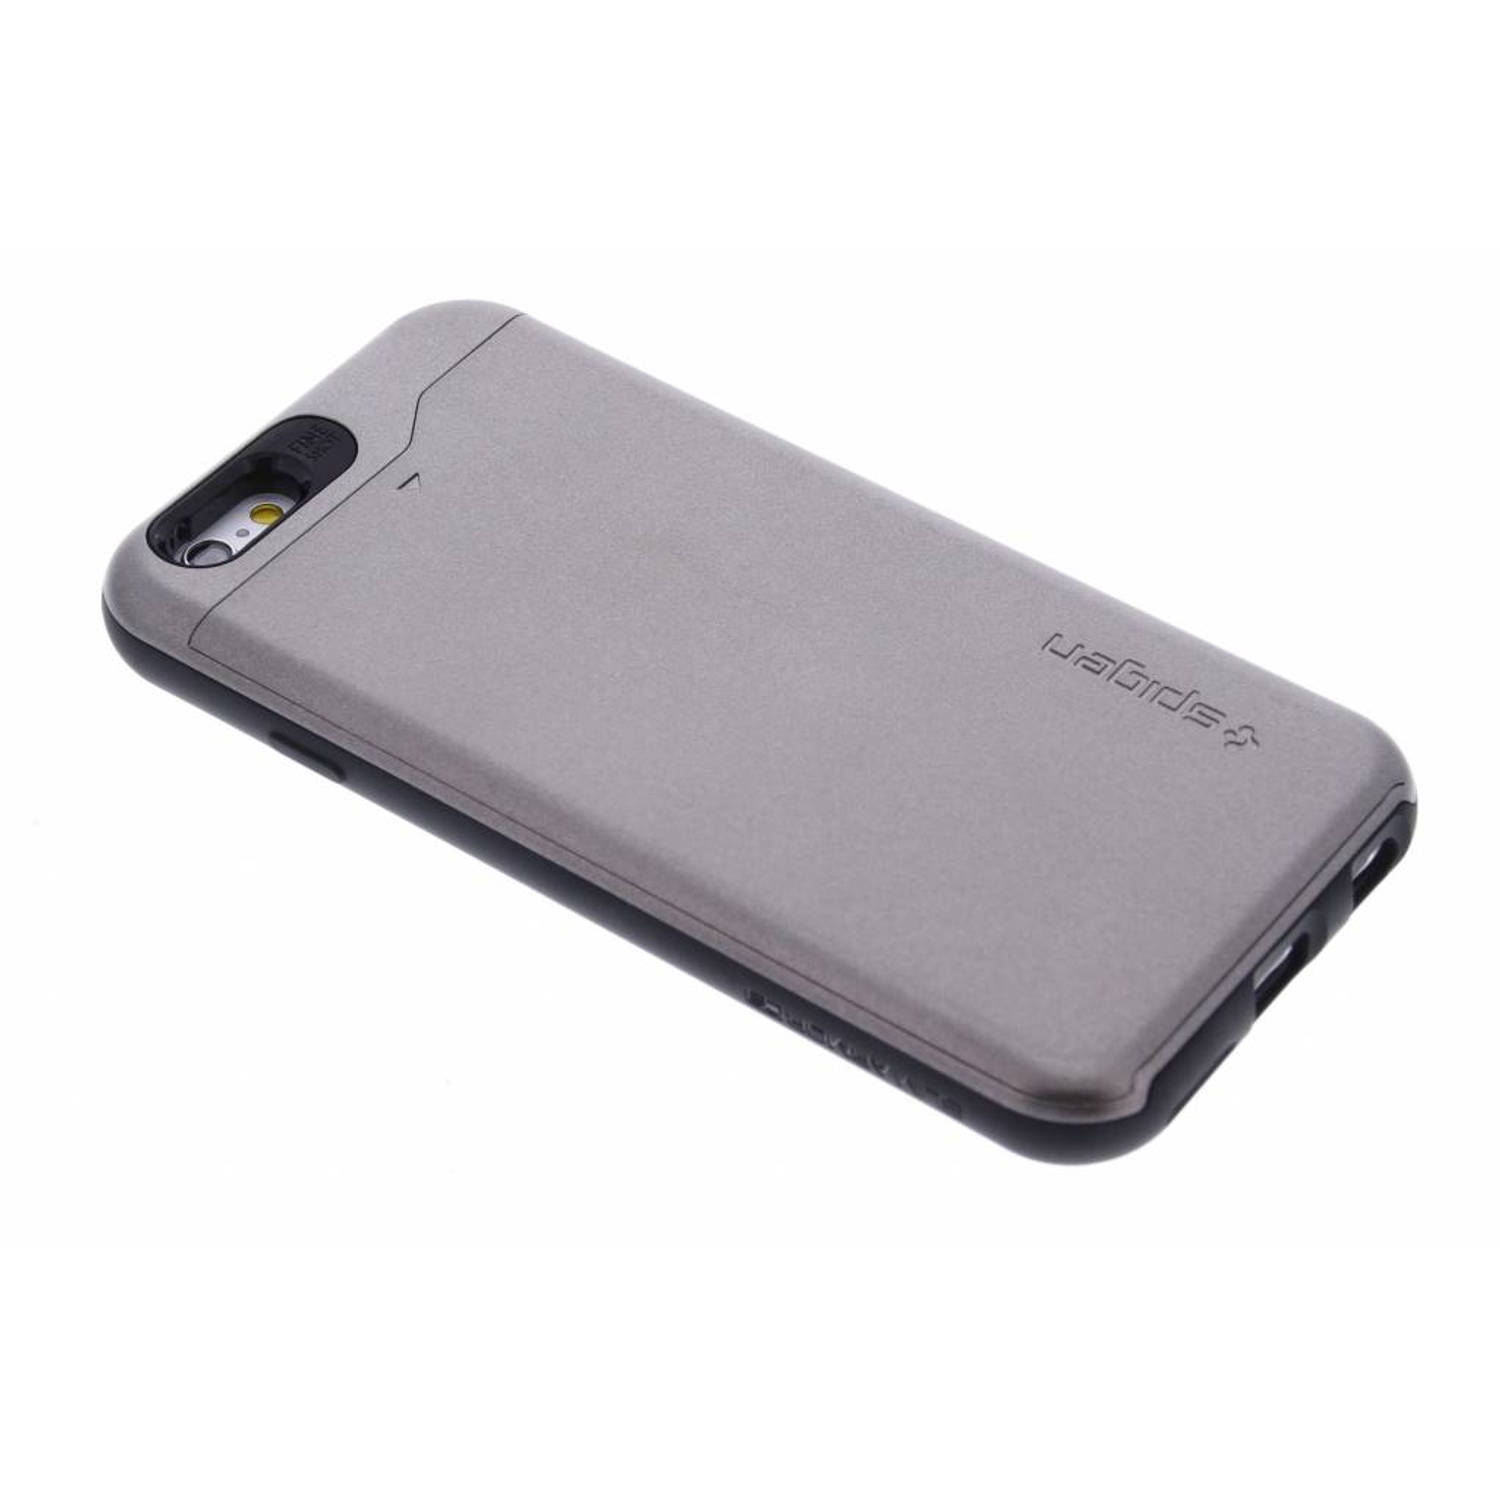 Slim Armor CS Case voor de iPhone 6 / 6s - Gunmetal